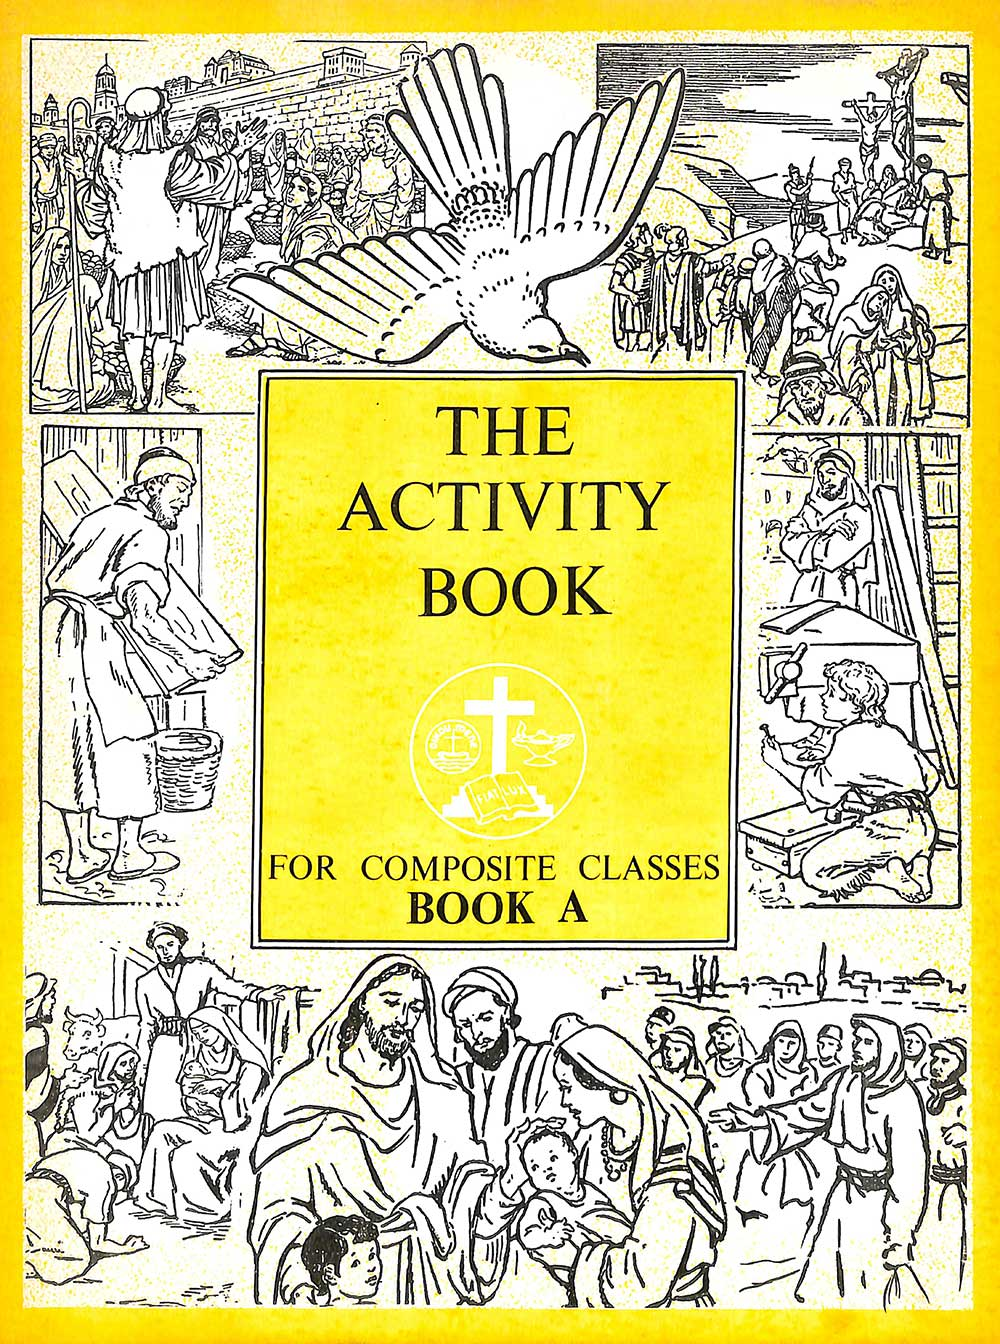 A.W. Reed. <em>The activity book for composite classes. Book A.</em> Wellington: A.H. & A.W. Reed, [1956]